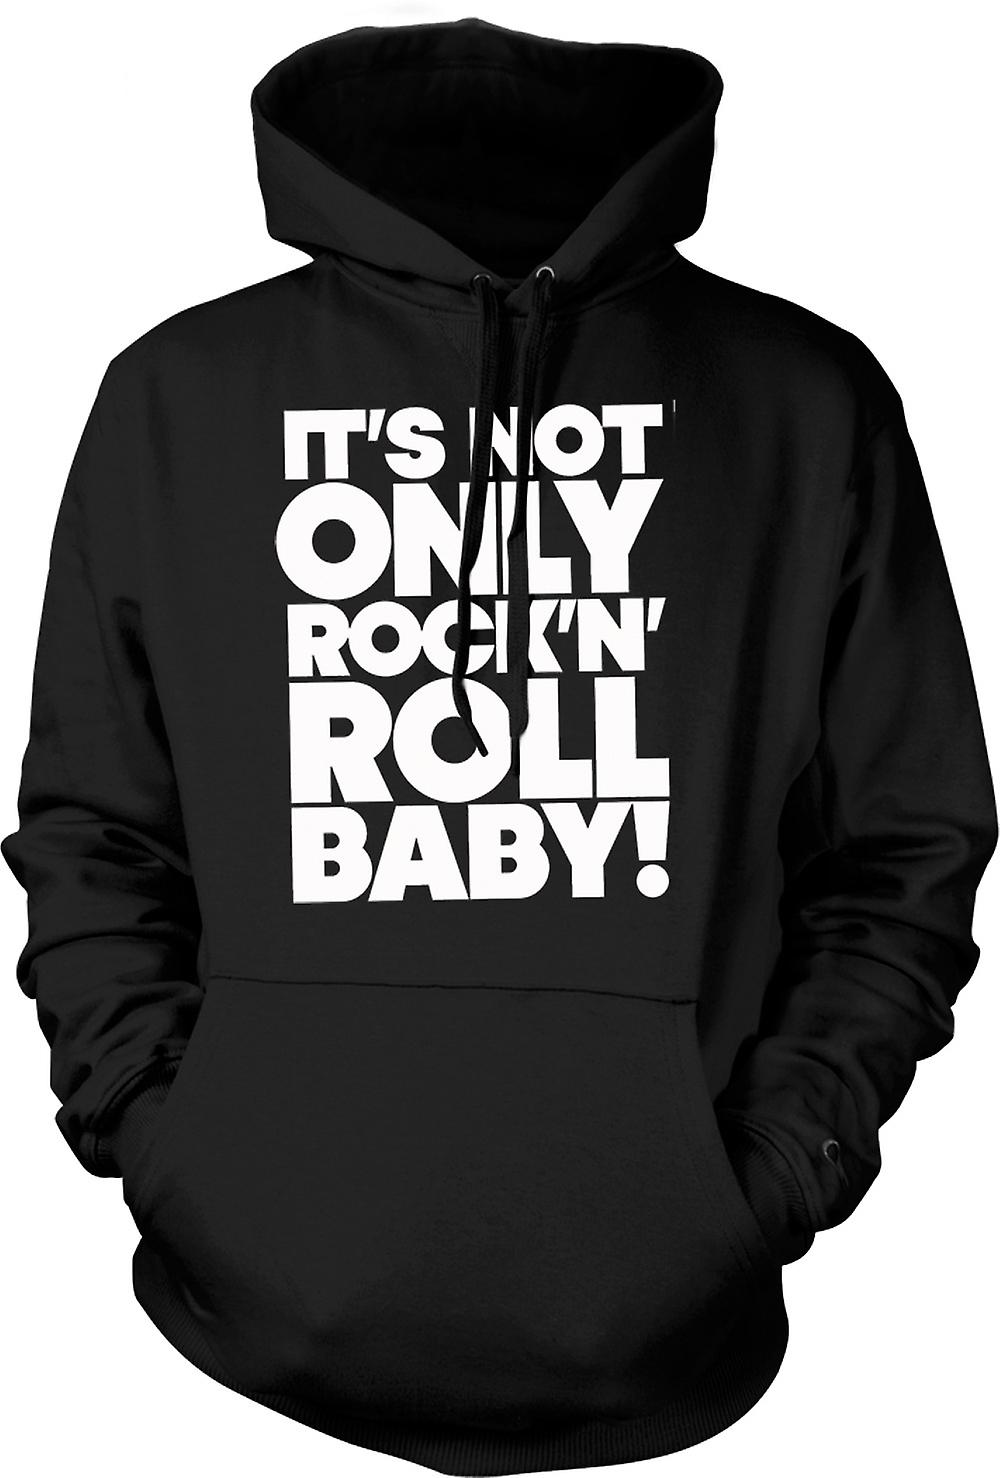 Mens Hoodie - It's Not Only Rock n Roll Baby